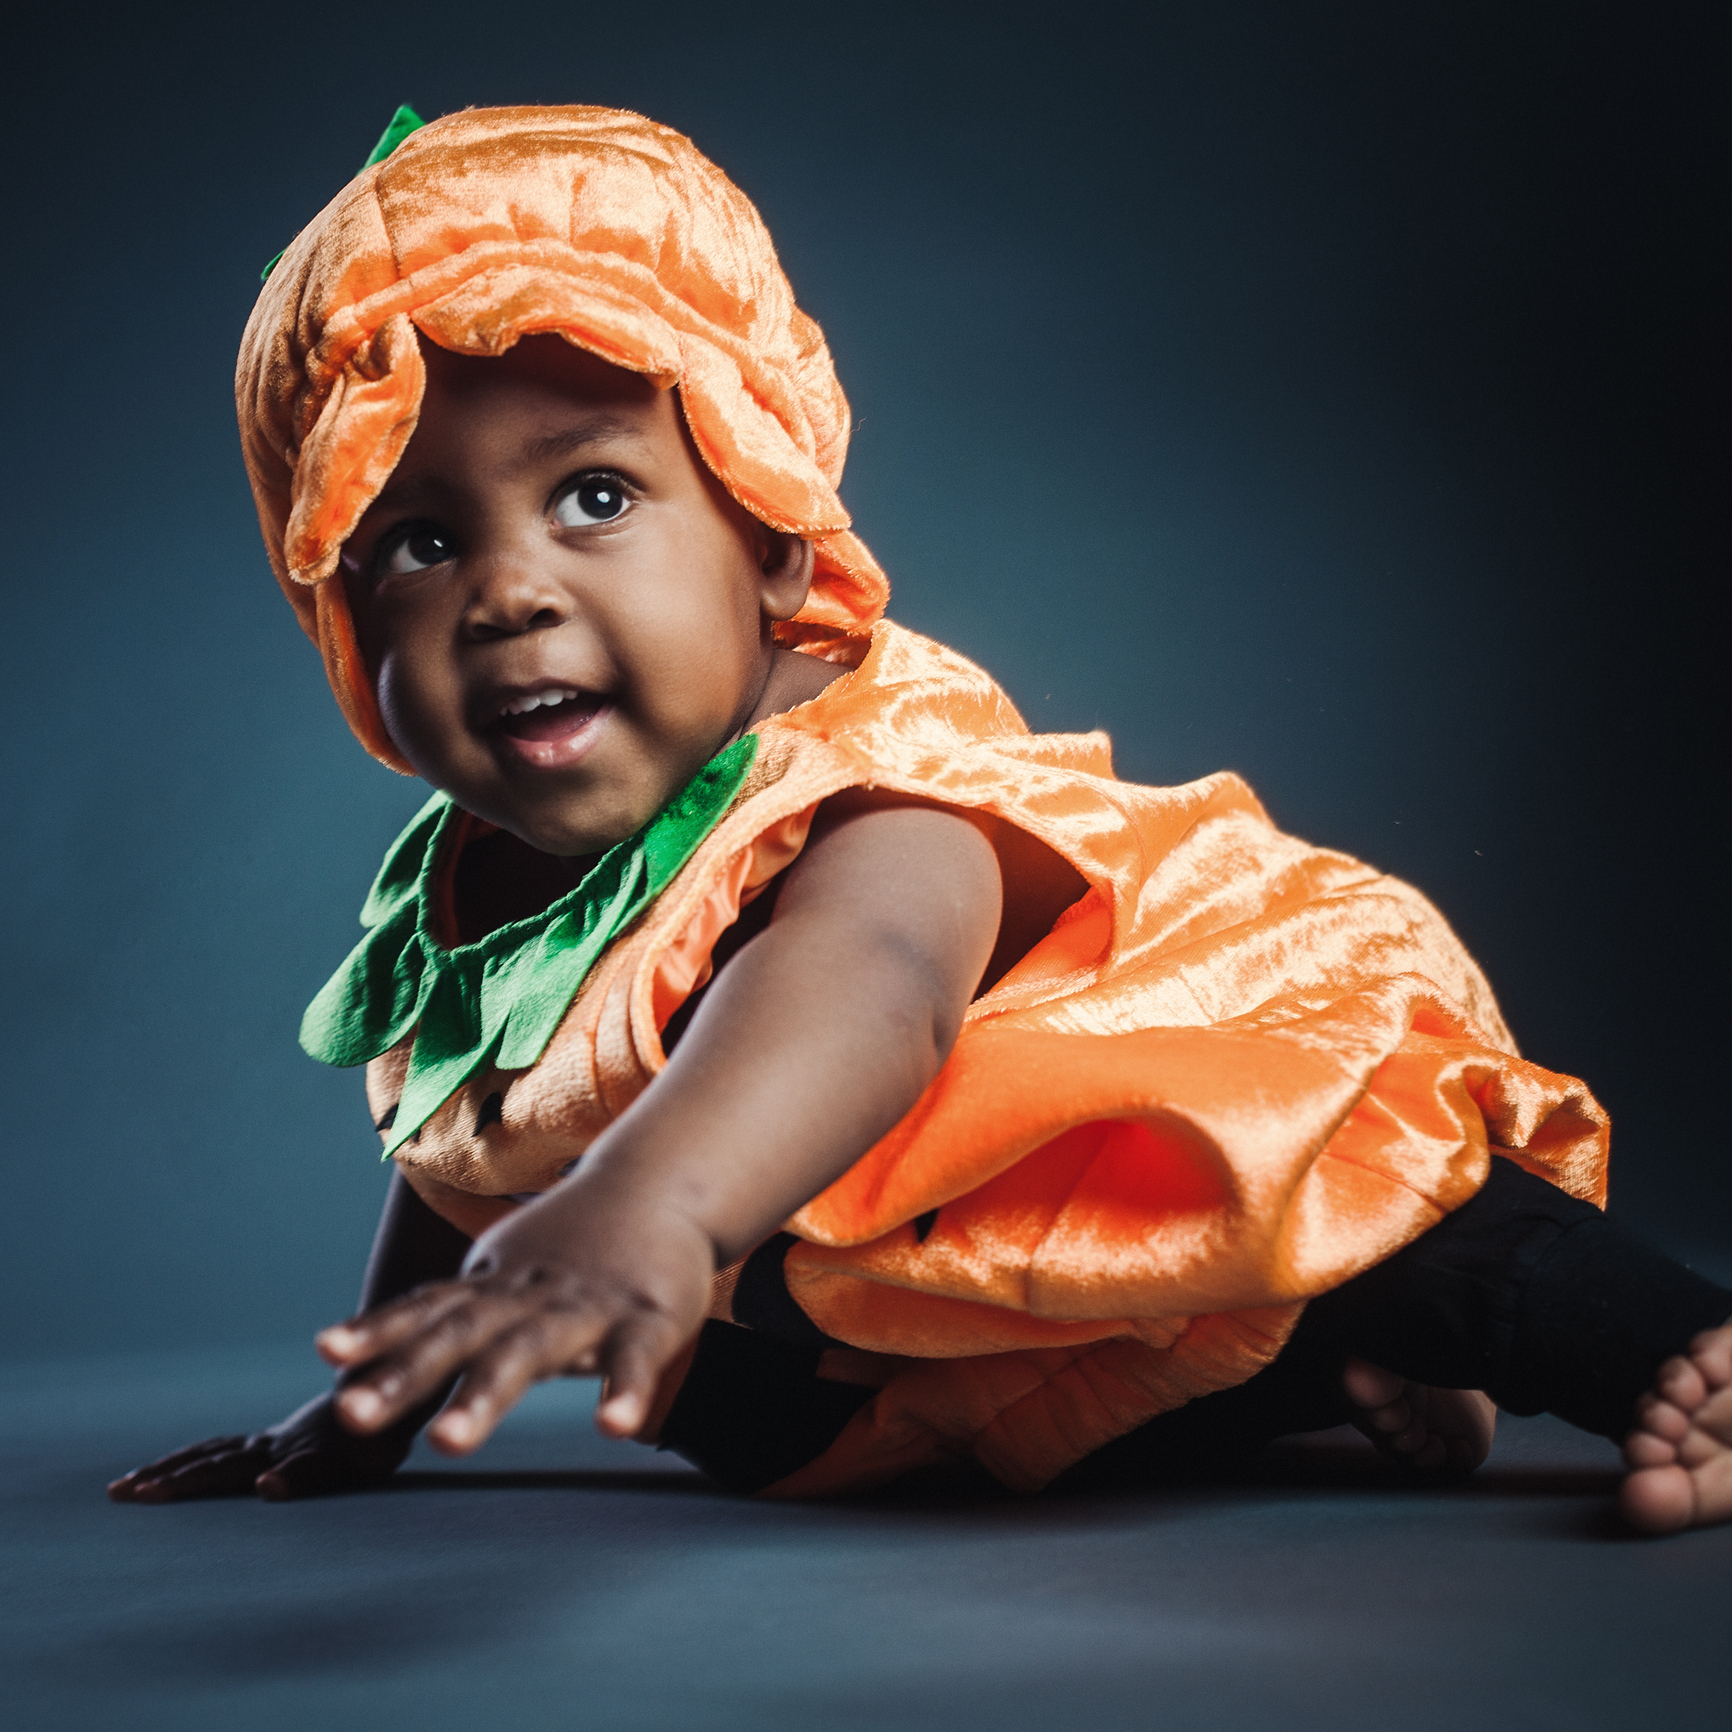 Cute baby boy in pumpkin costume